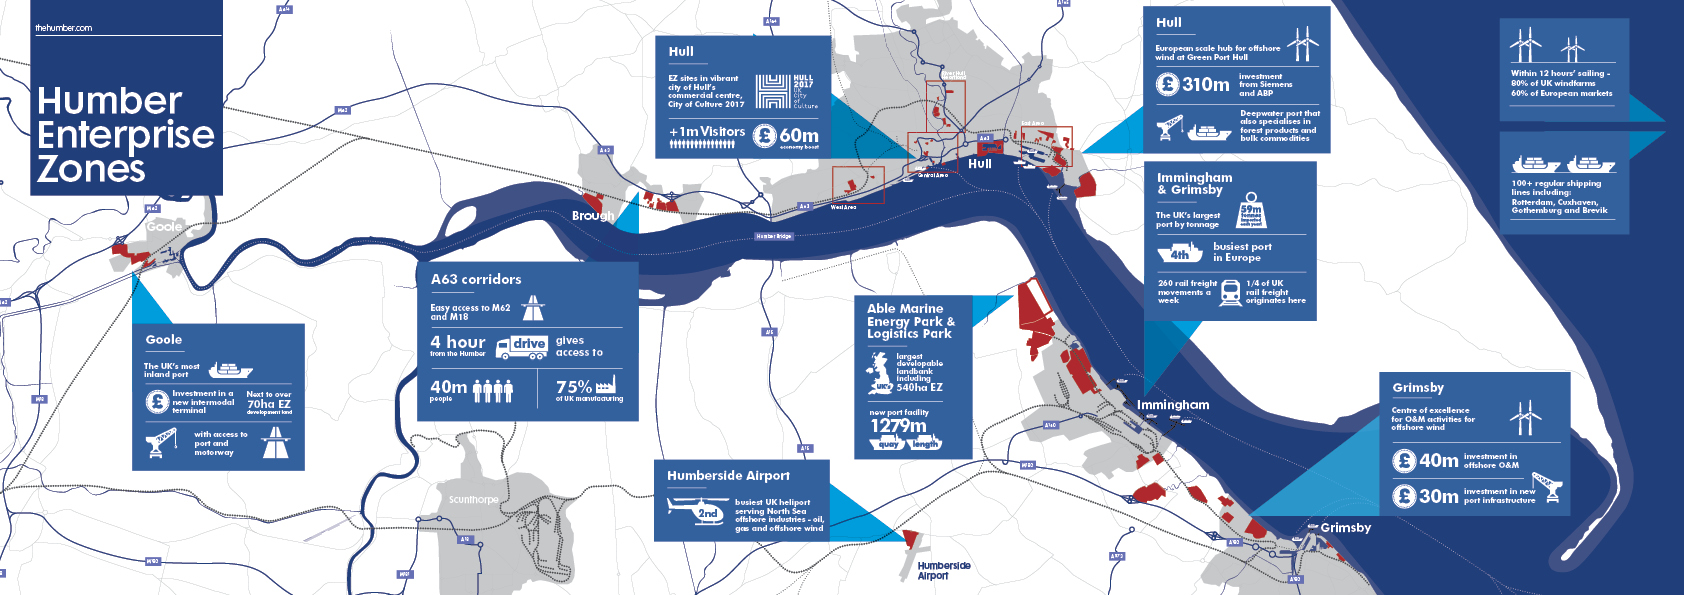 Humber Enterprise Zones Map